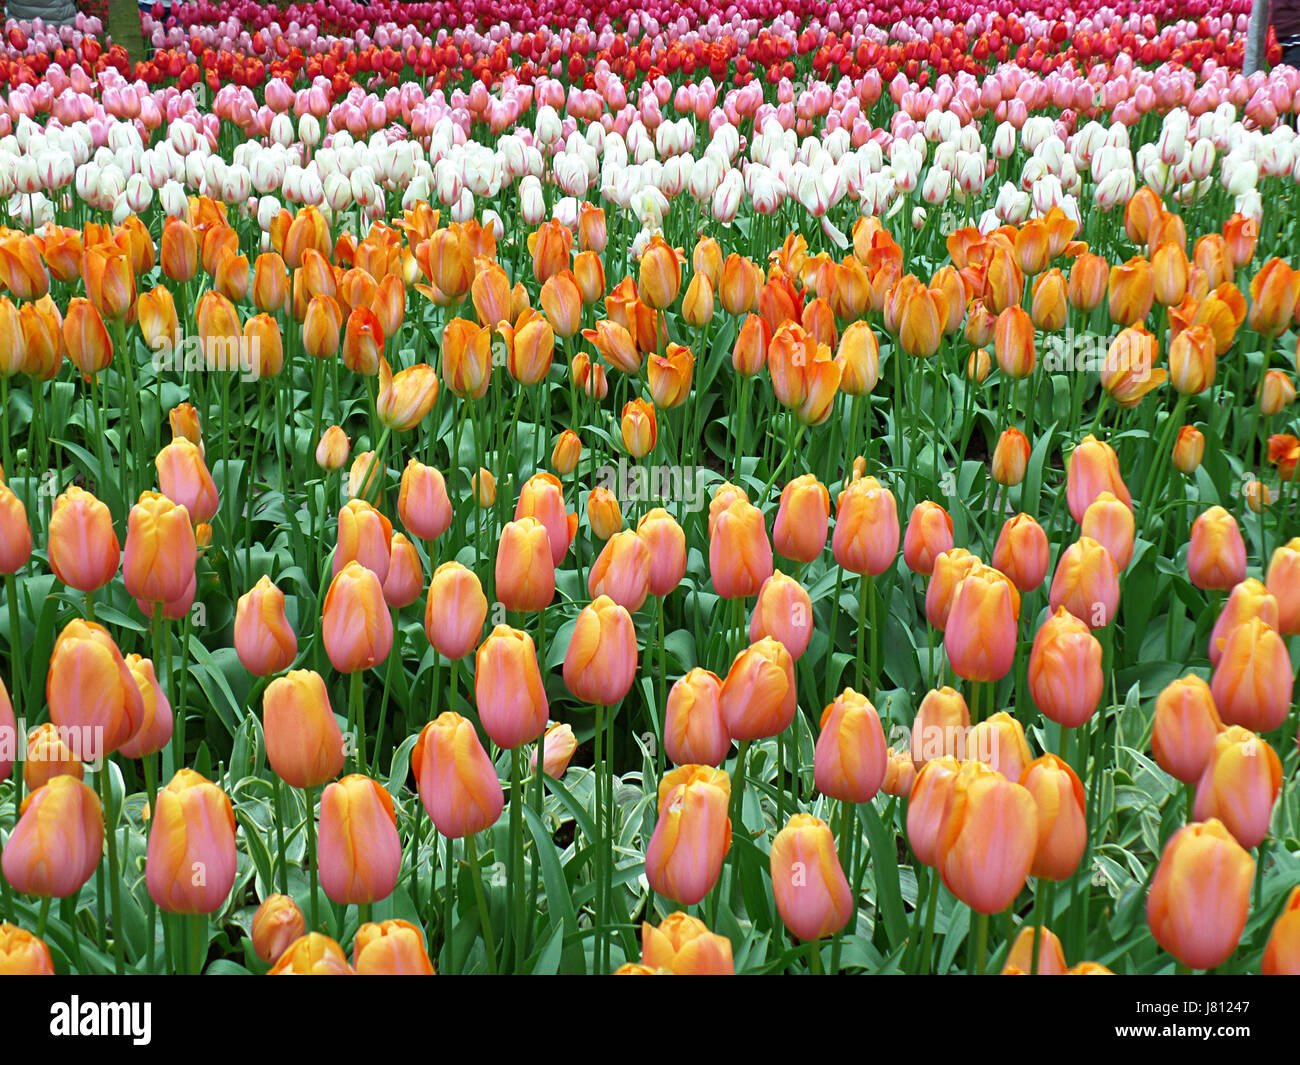 Vibrant Color Blooming Two-Tone Tulip Flowers in Keukenhof Garden in Lisse, The Netherlands - Stock Image